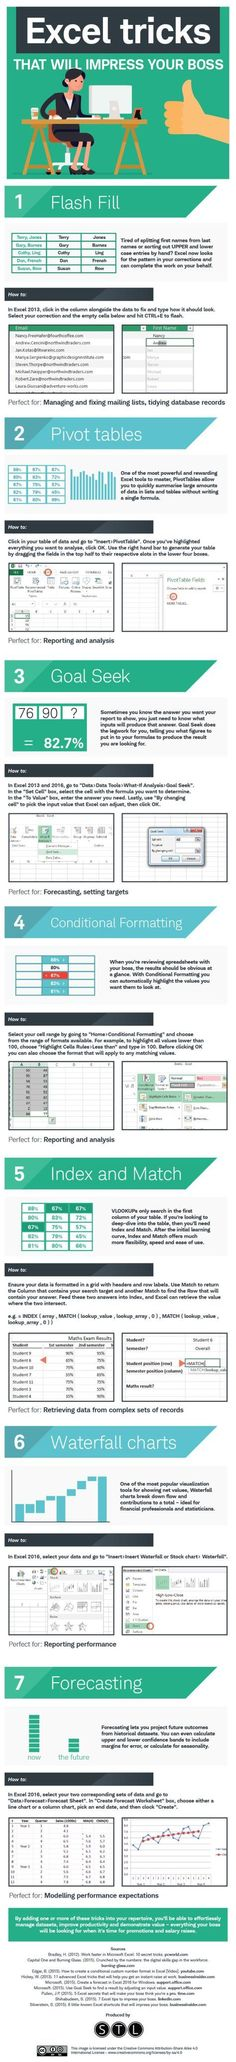 30 best educational images on Pinterest Computer tips, Computers - api calculation spreadsheet